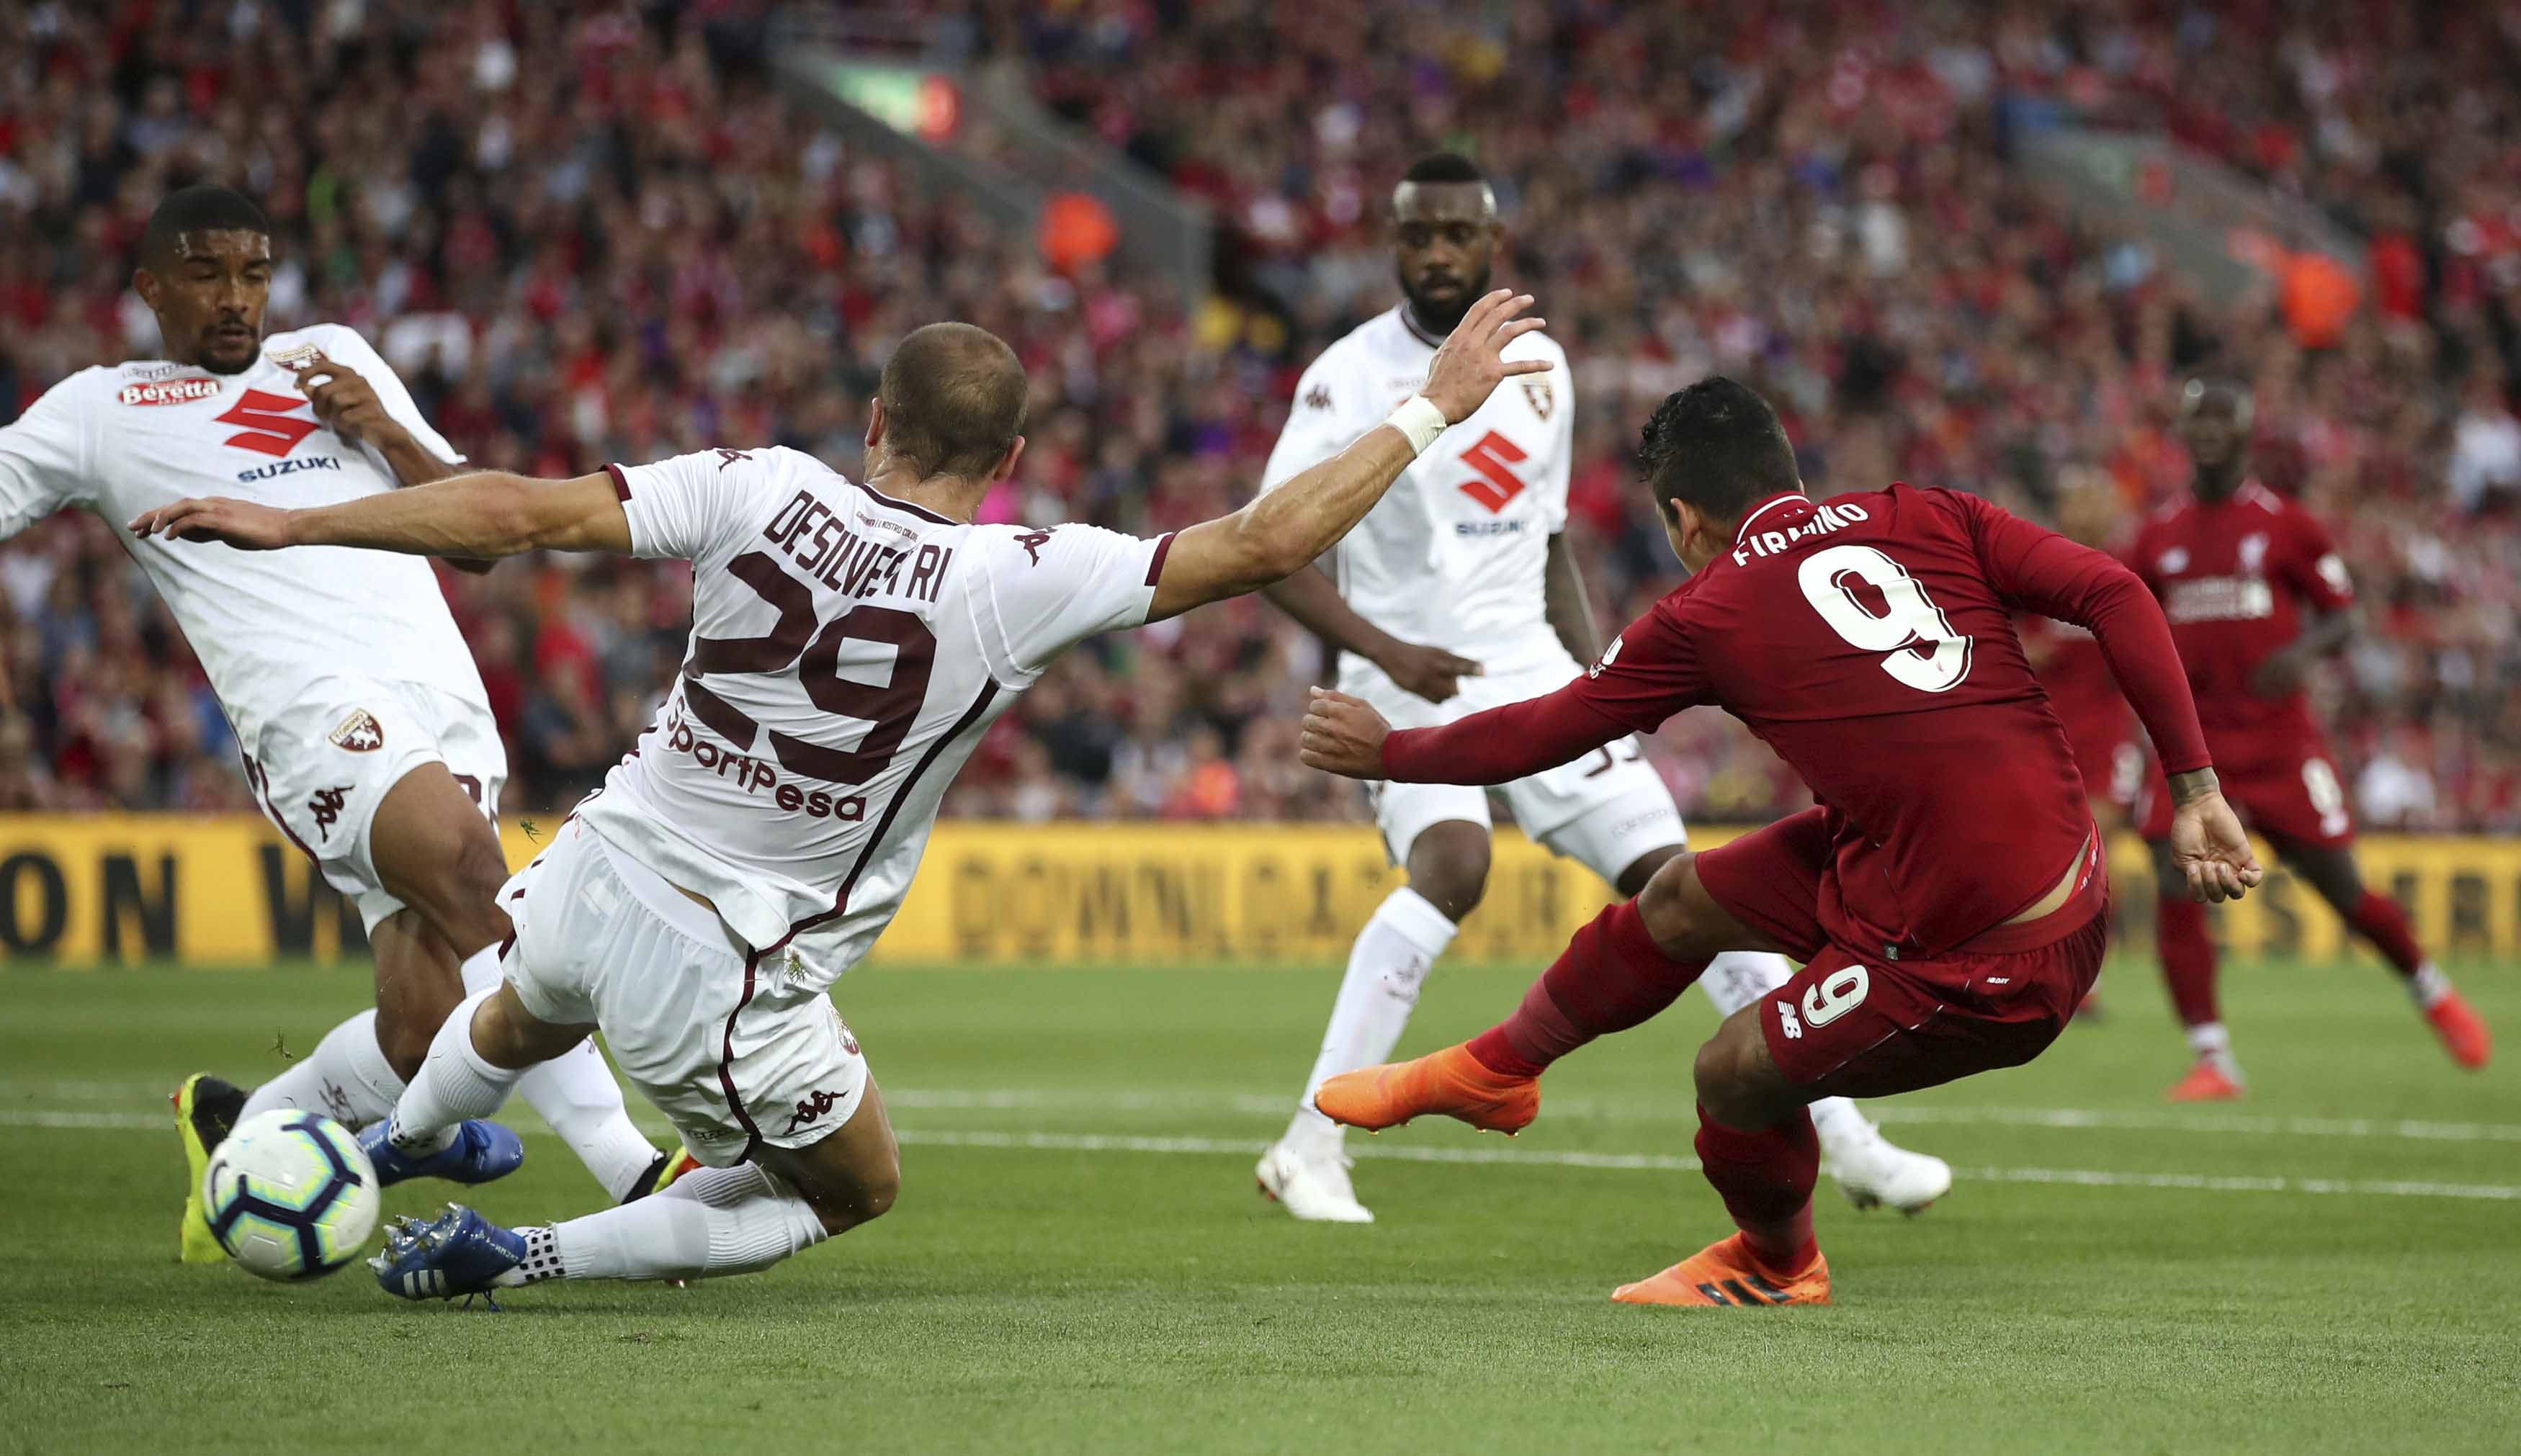 Liverpool's Roberto Firminho (right) scores his side's first goal of the game during the pre-season soccer match between Torino and Liverpool at Anfield, Liverpool, England on Tuesday.